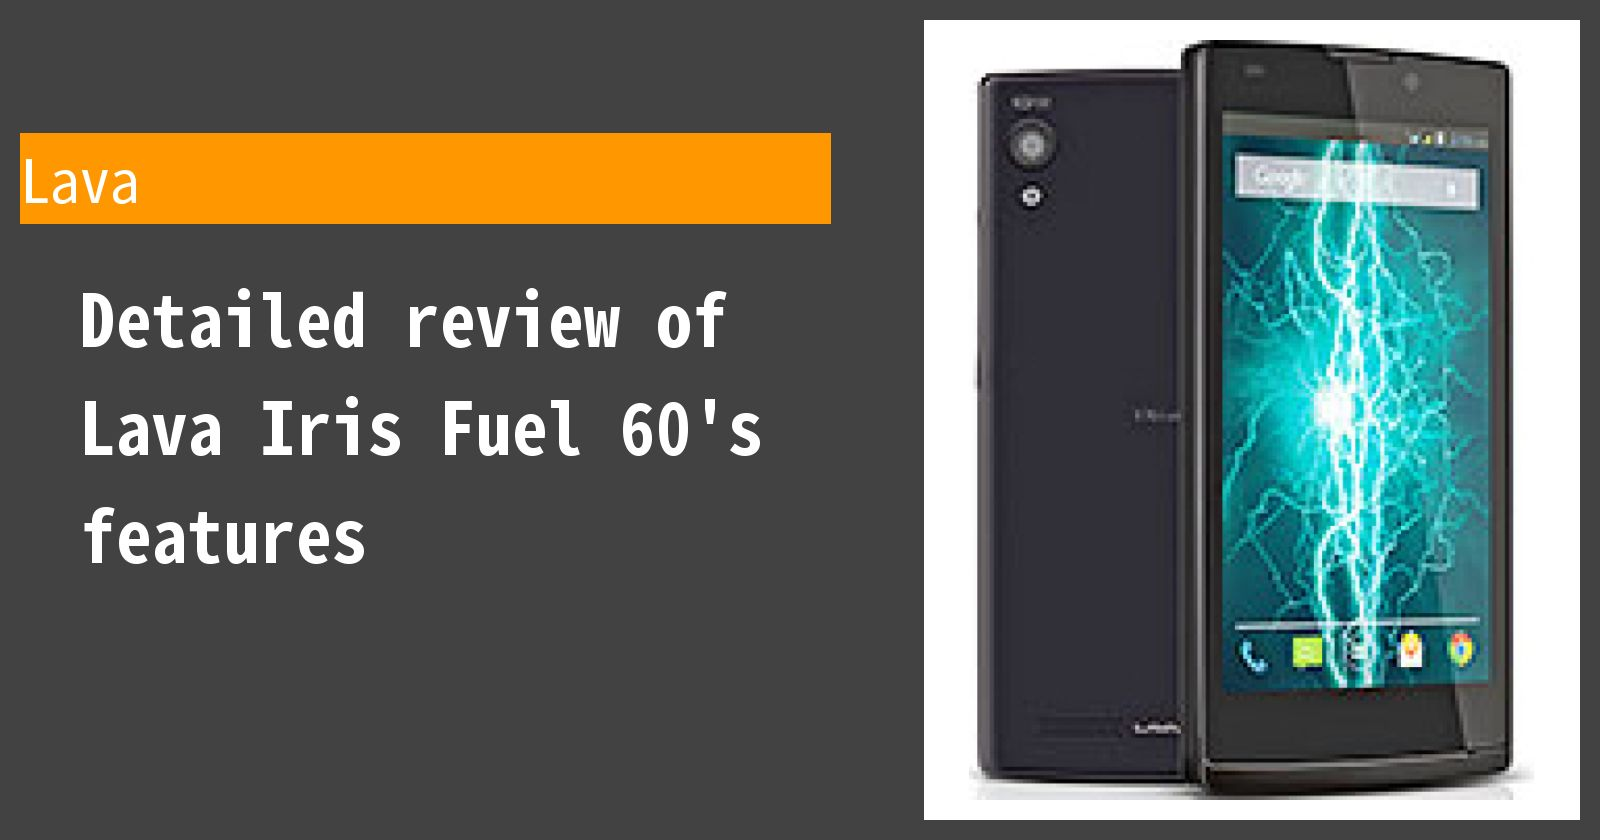 Detailed review of Lava Iris Fuel 60's features